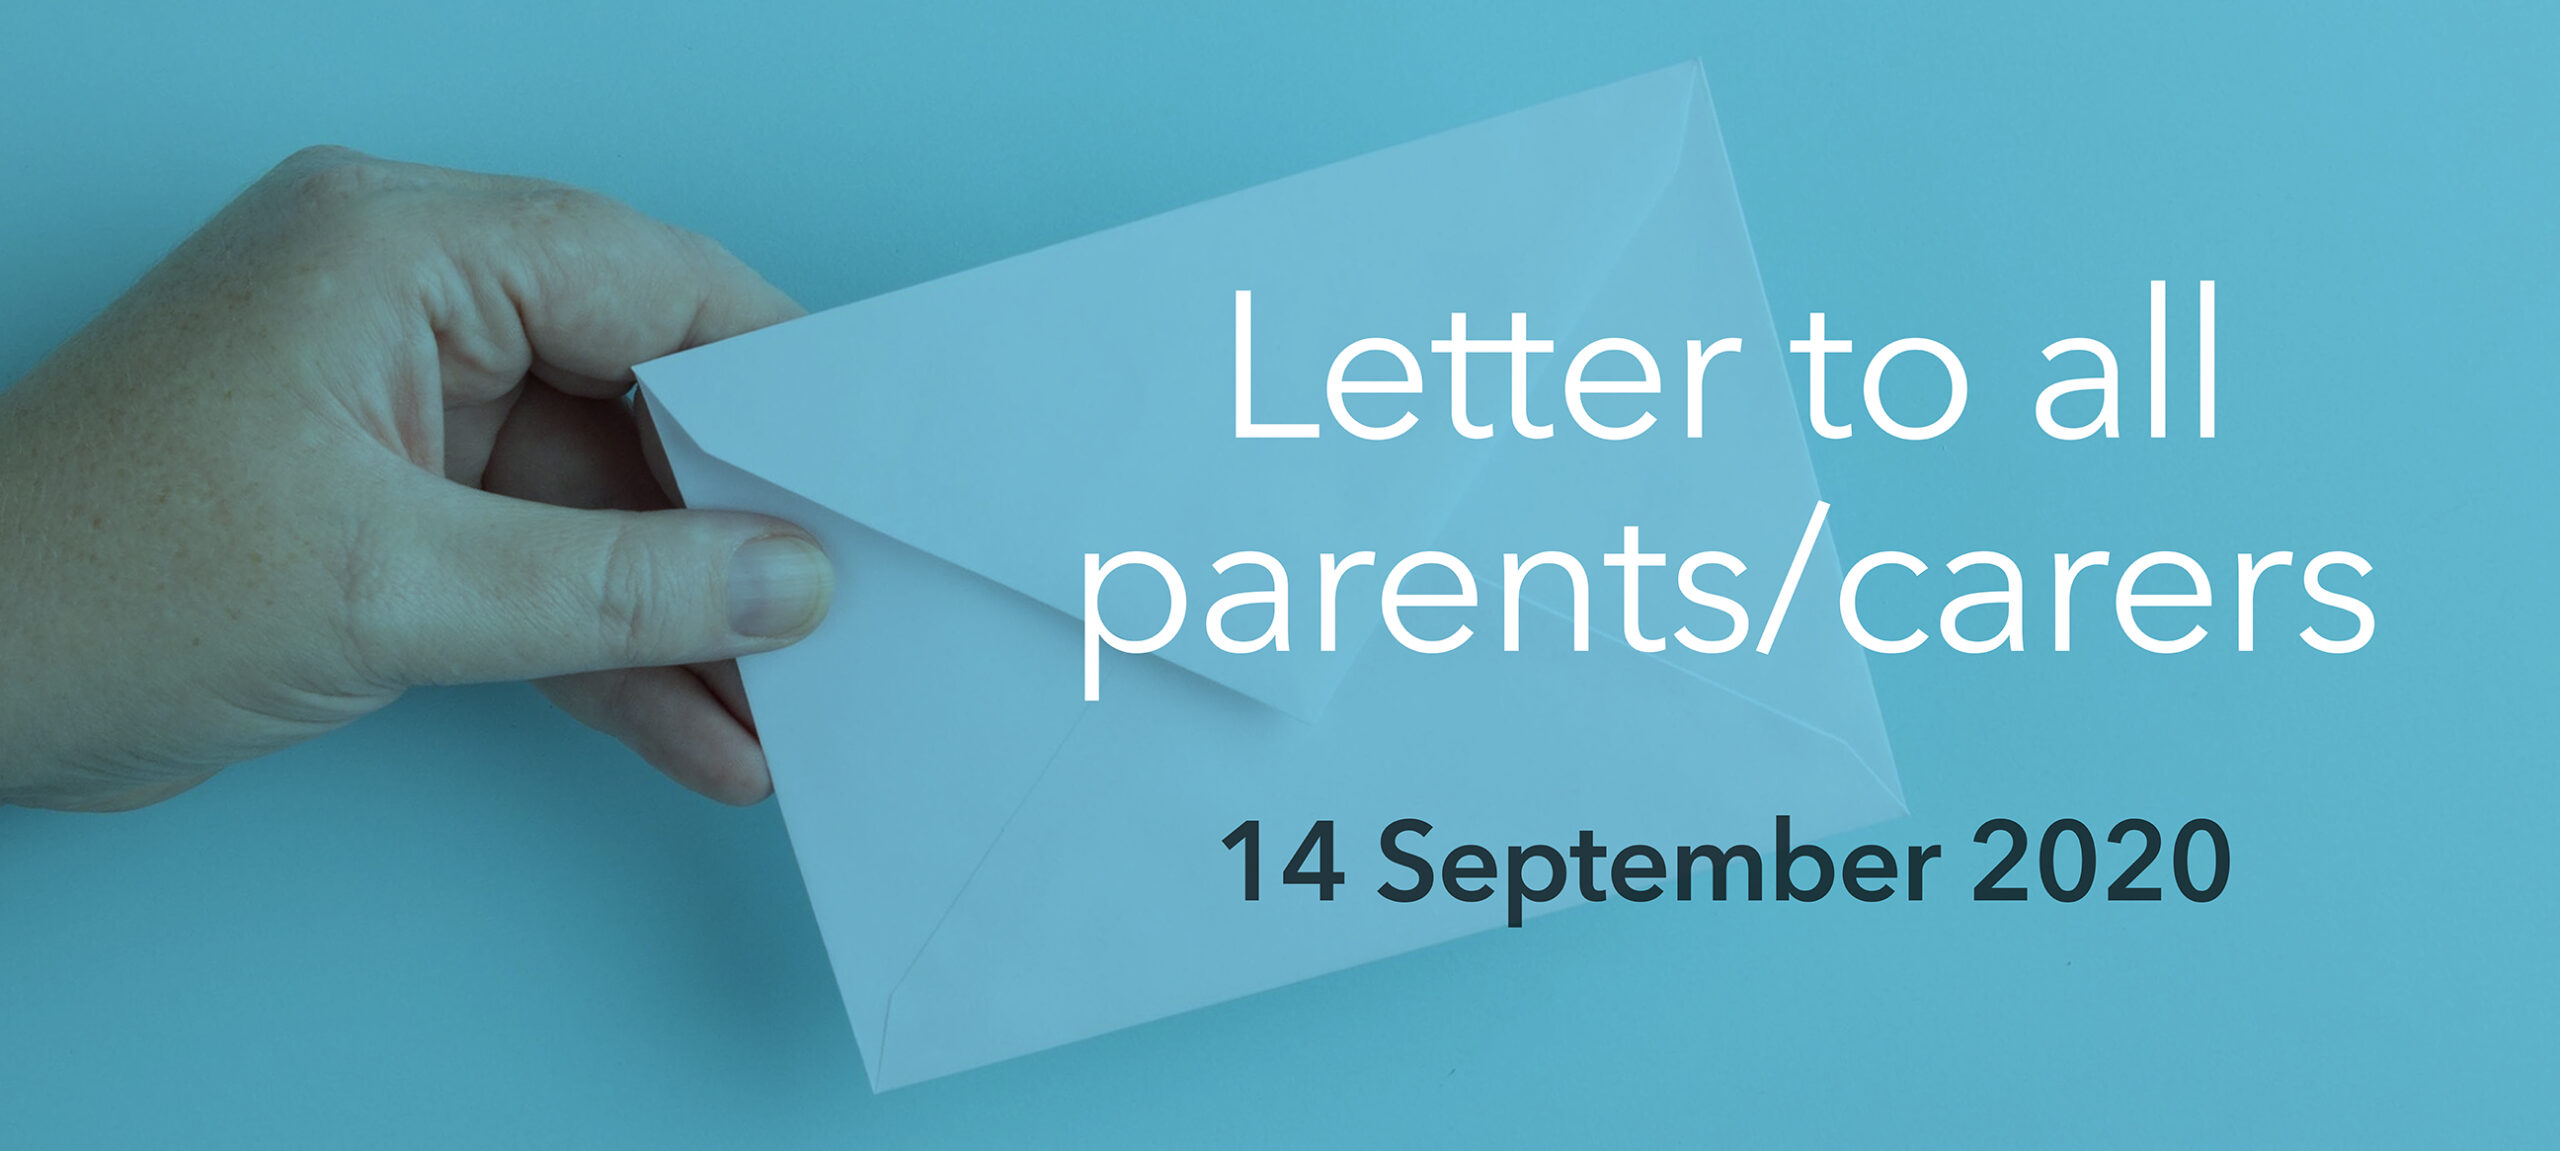 Letter to all parents, 14 September 2020